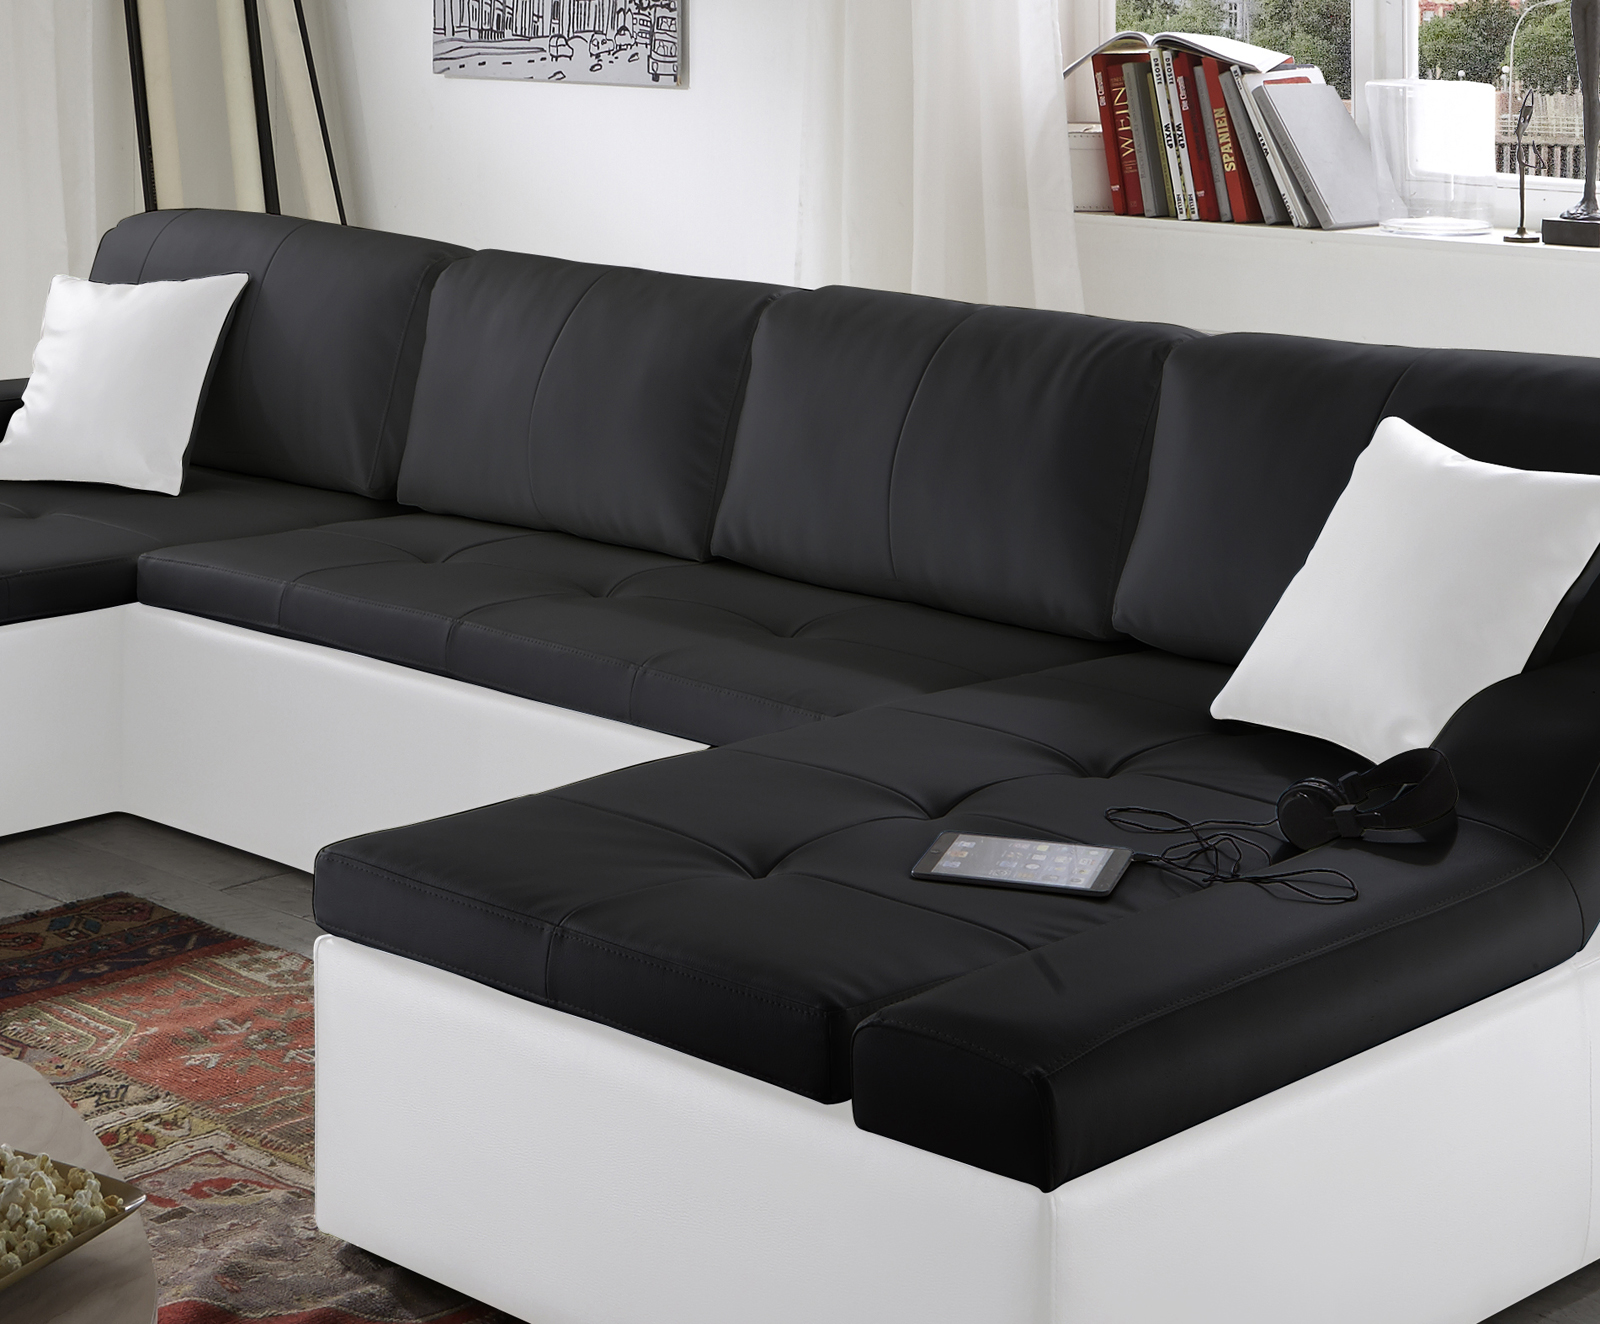 sam sofa schwarz wei wohnlandschaft rosella 230 x 335 x. Black Bedroom Furniture Sets. Home Design Ideas